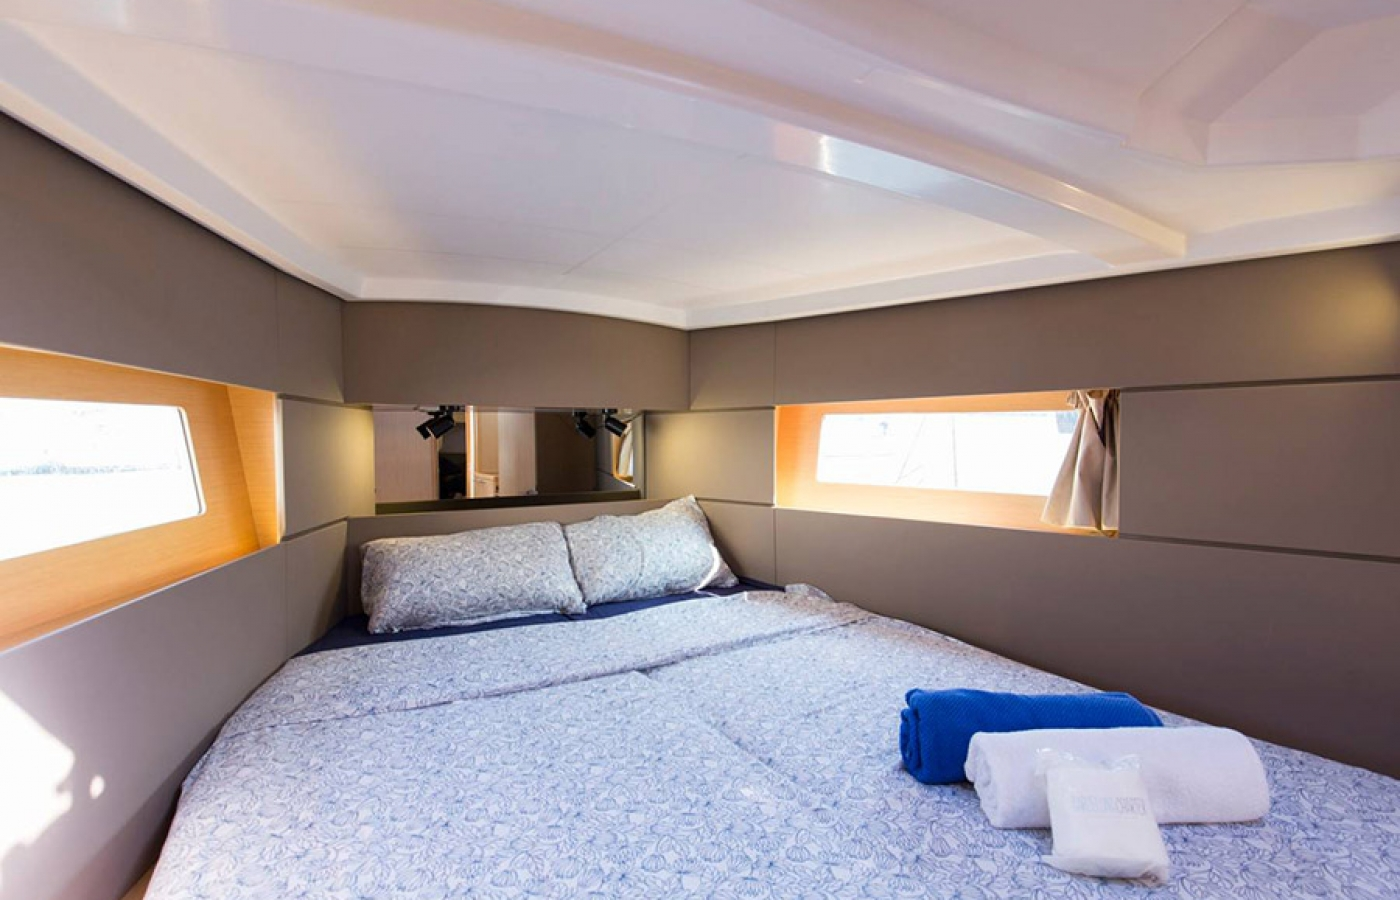 Large double bed inside the cabin including two windows and storage